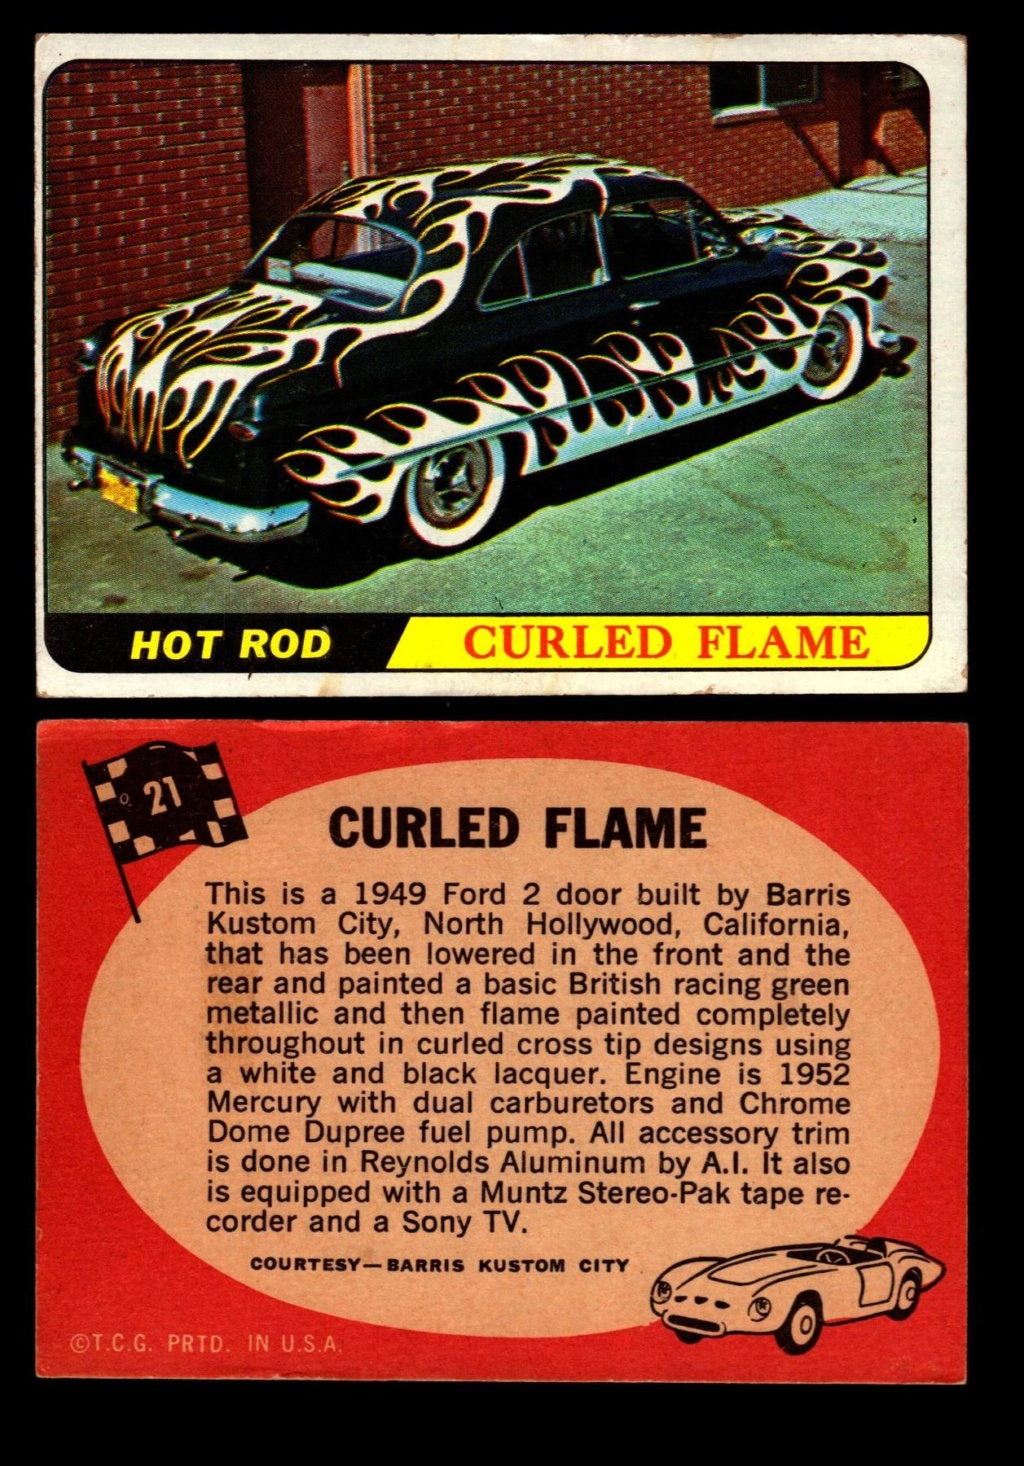 Hot Rods Topps - Vintage Trading Cards 1968 - Custom car - Dragster - Racer - Dream car - Barris Kustom City - Ed Roth Darrill Starbird, Gene Winfield, Bill Cuchenberry 21_49610